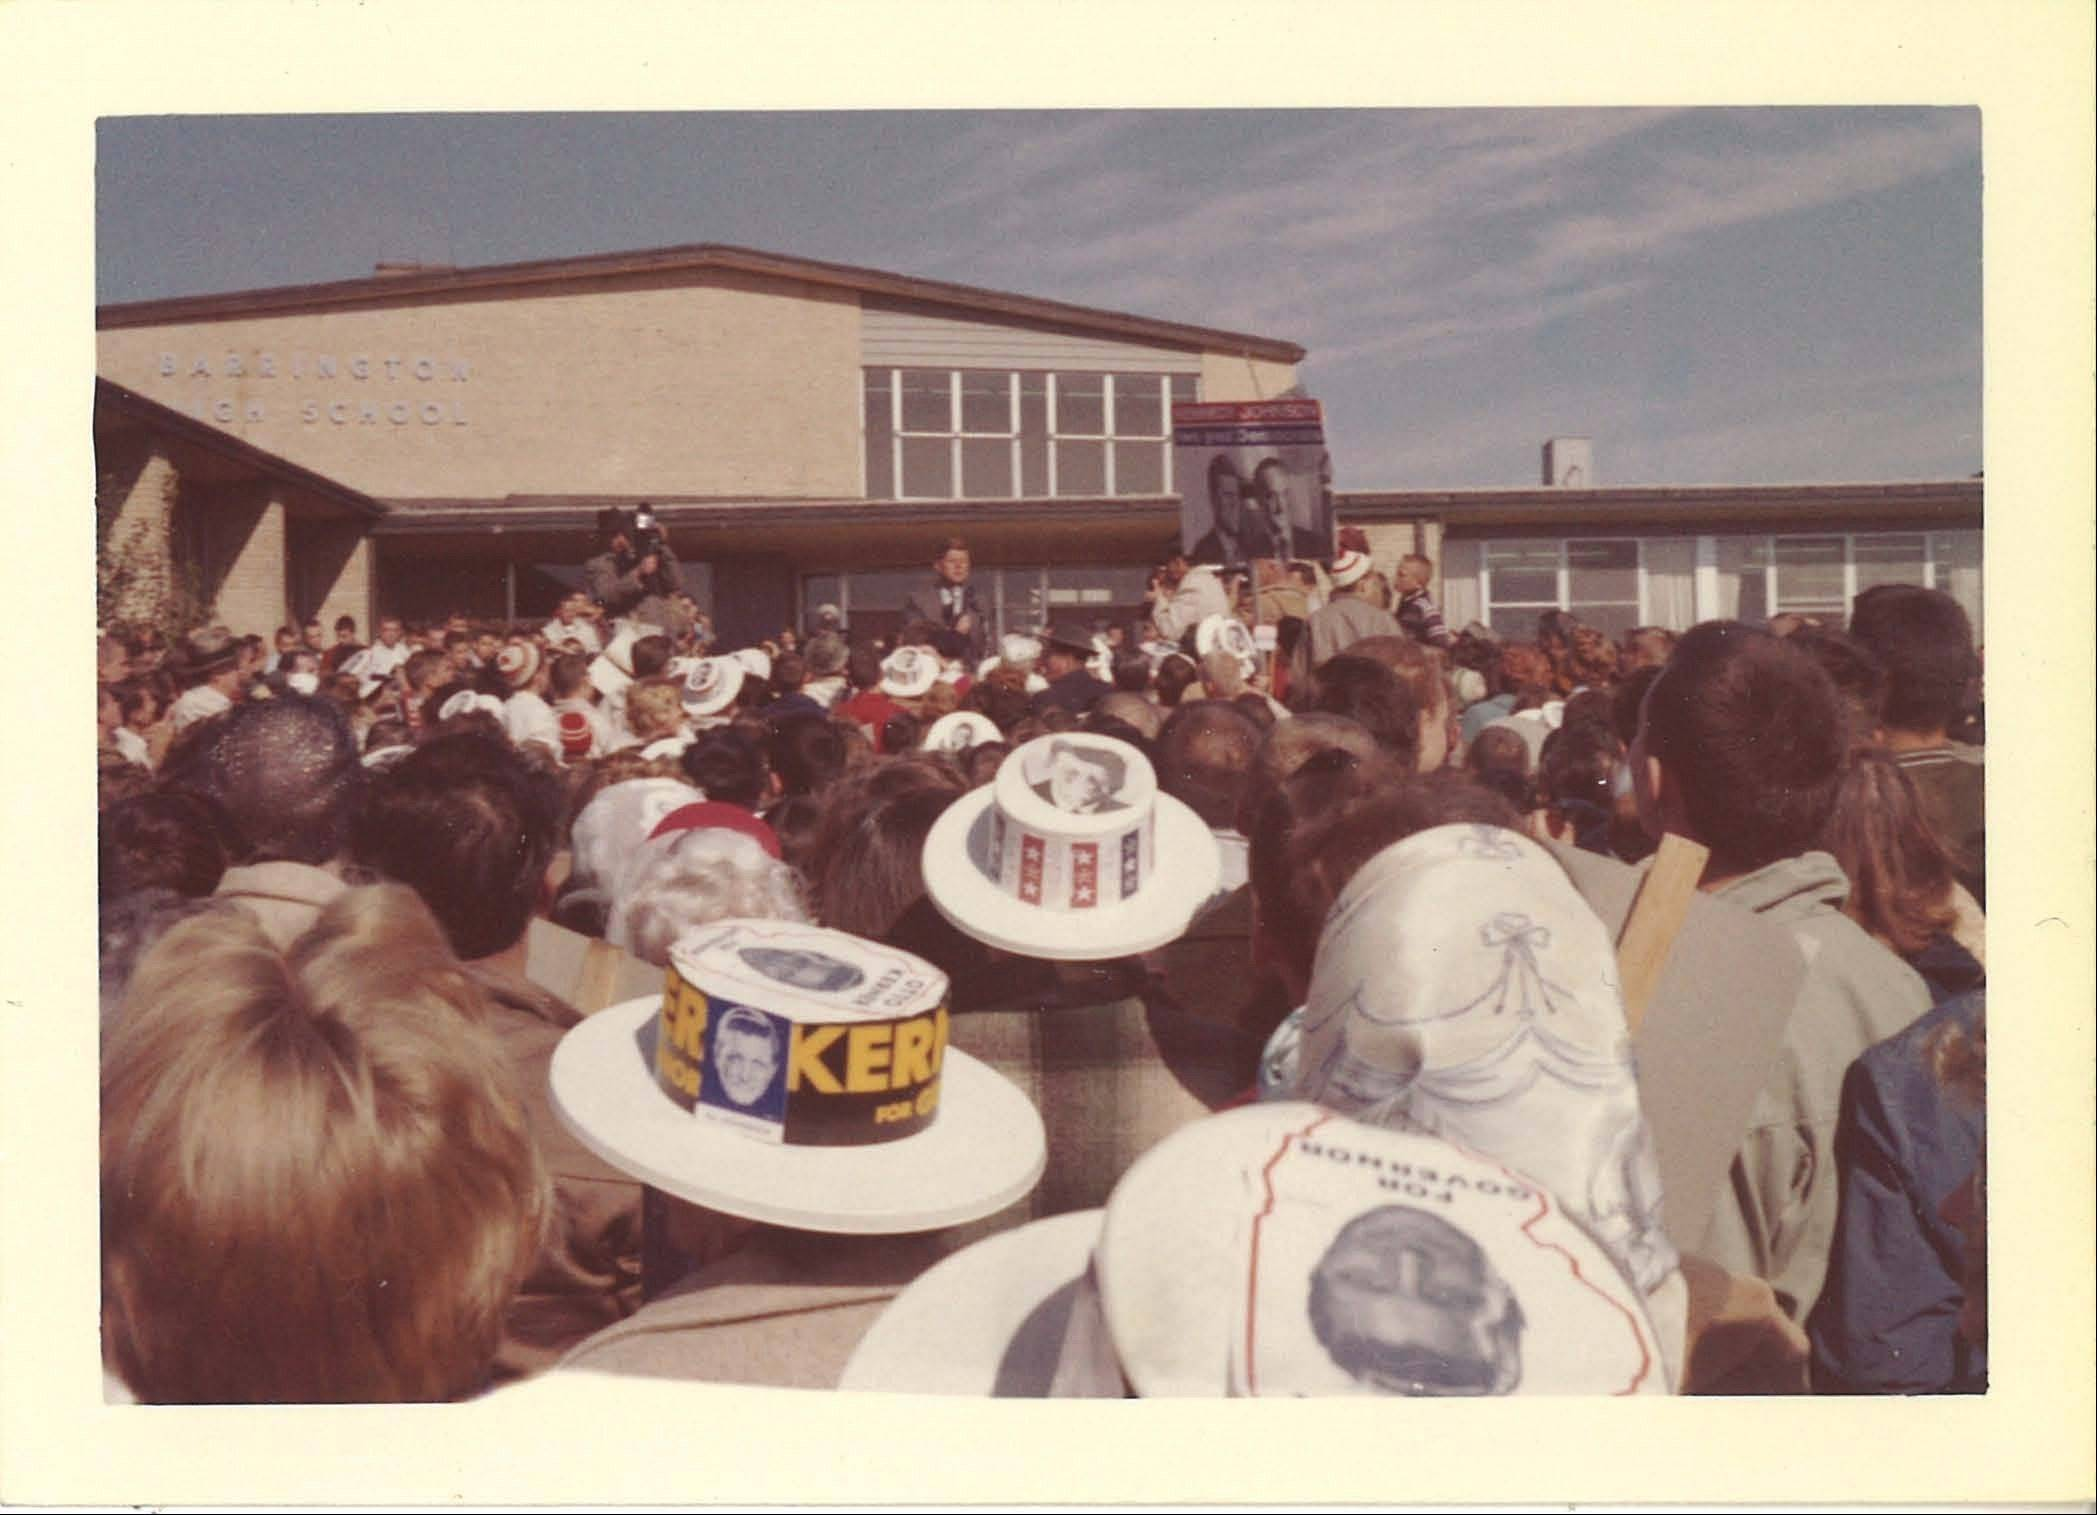 Sen. John F. Kennedy speaks from the front steps of Barrington High School less than two weeks before being elected president, in a newly found photo that's part of a collection to be unveiled Thursday, Nov. 21 at the school.